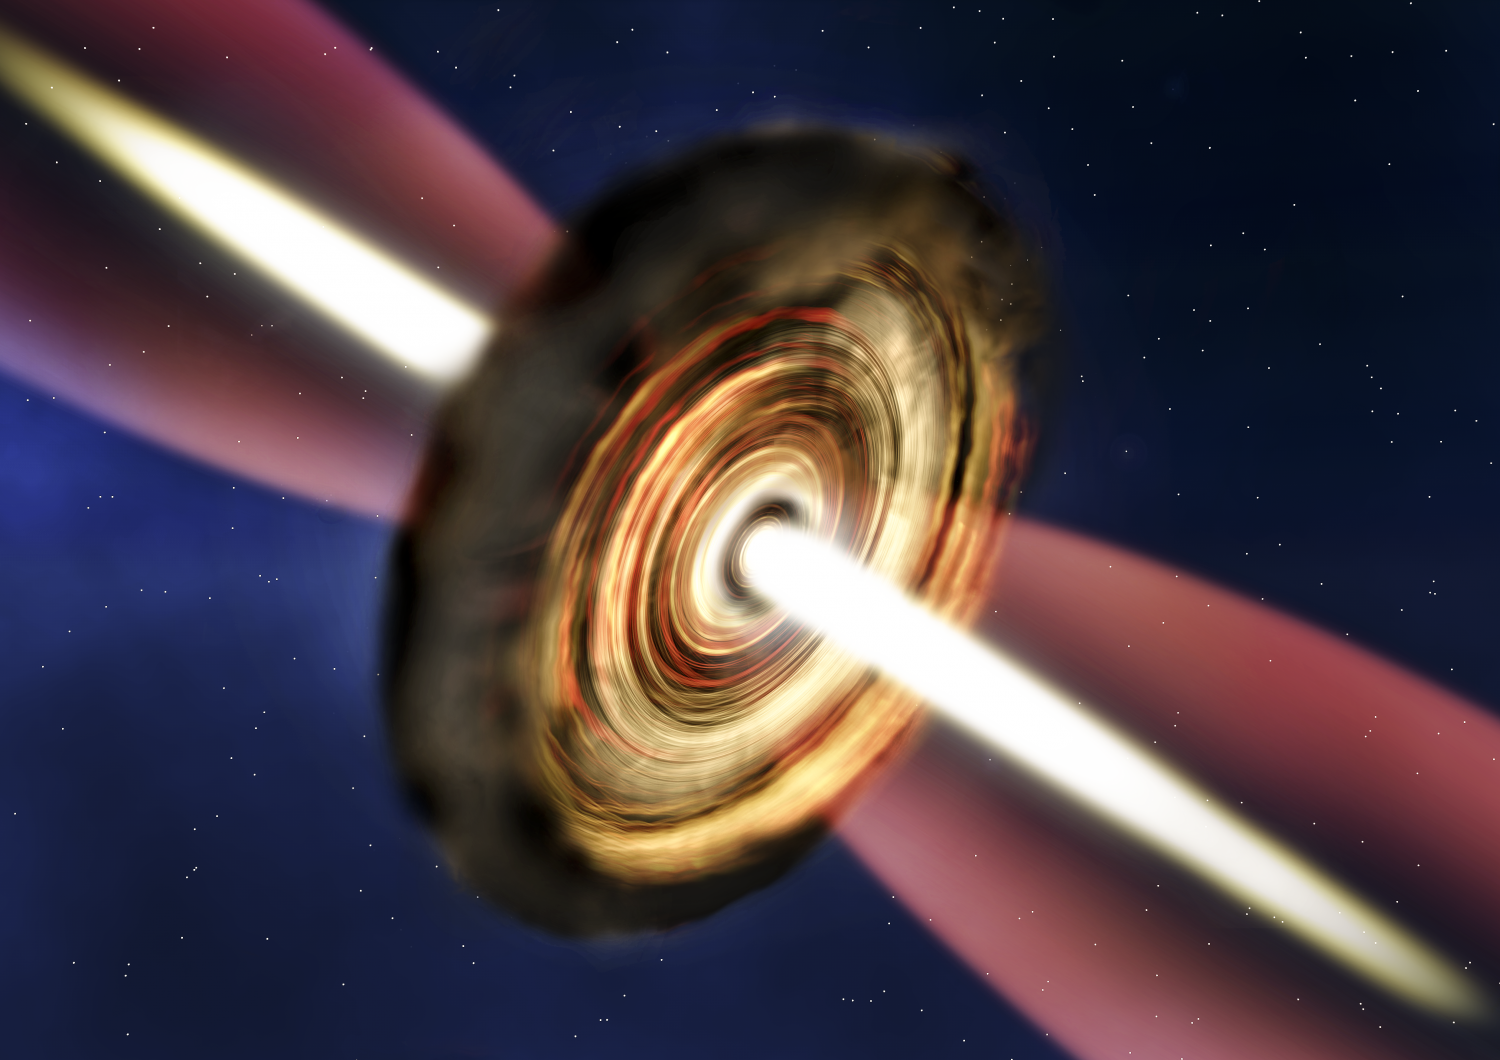 An artist's impression of the disc and outflow around the massive young star. (Credit: A. Smith, Institute of Astronomy, Cambridge)